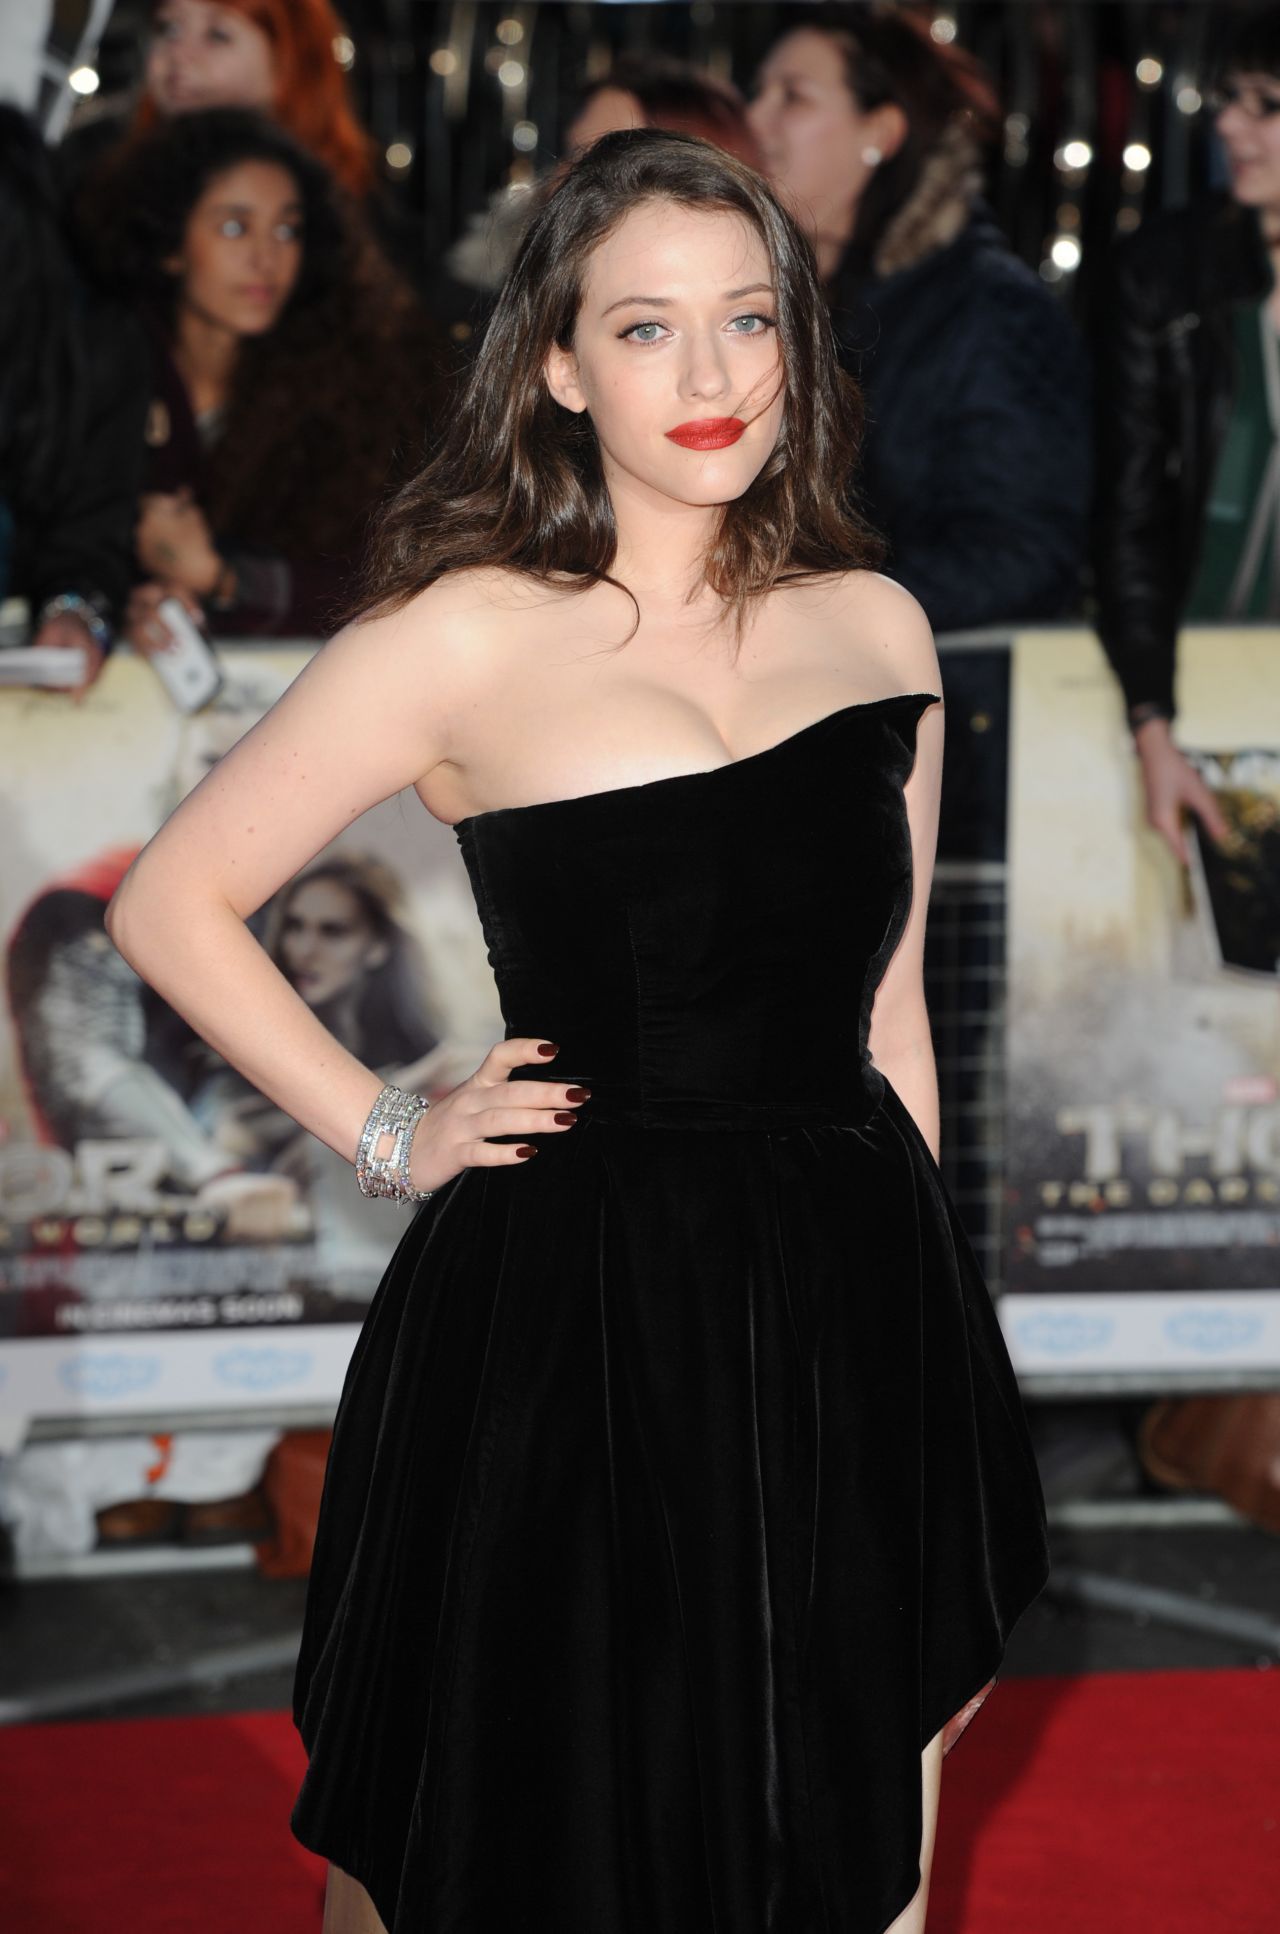 Kat Dennings - THOR: THE DARK WORLD Red Carpet in London